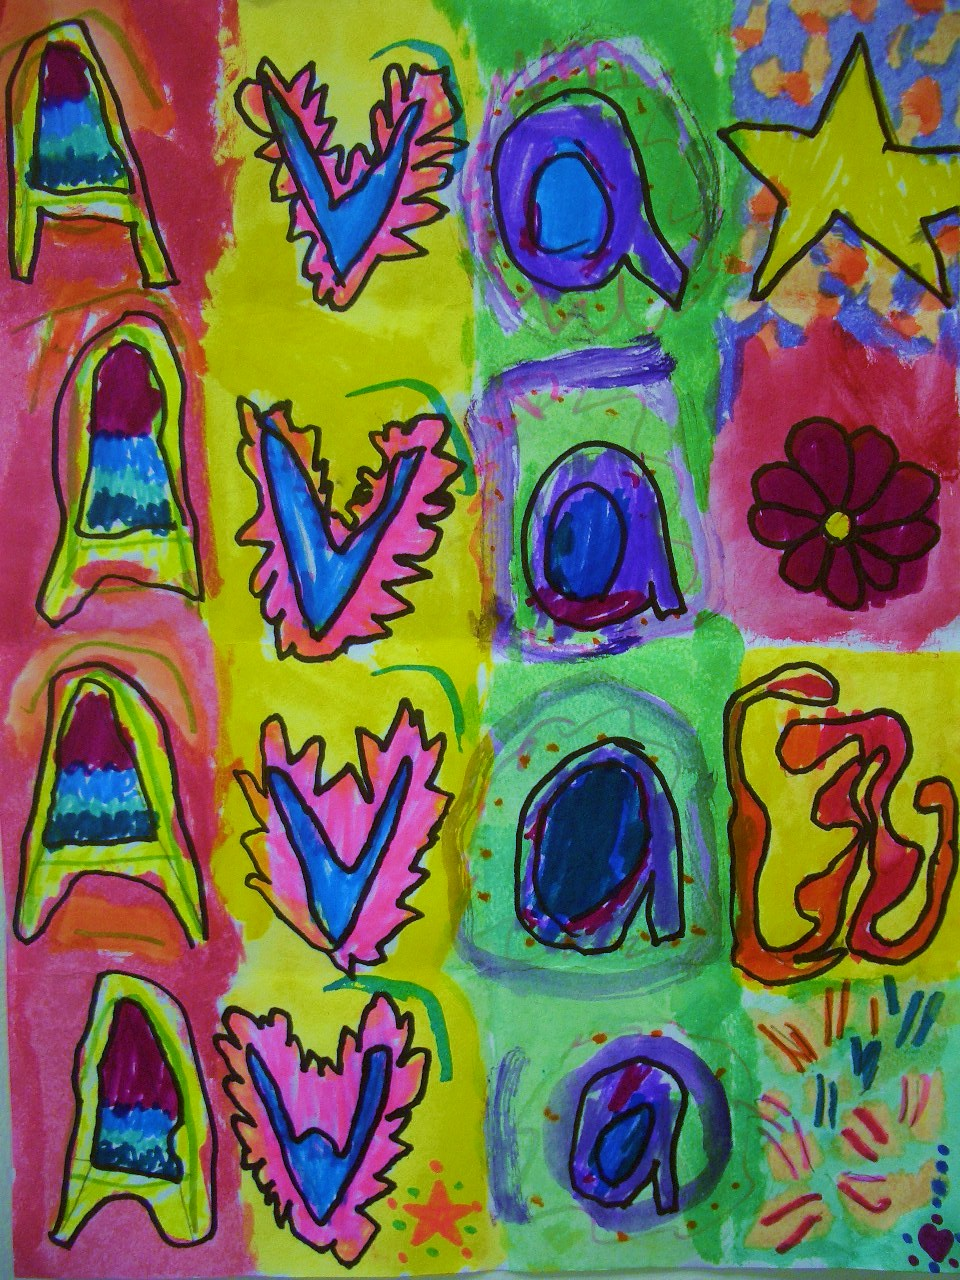 DREAM DRAW CREATE: Name Patterns Inspired by Jasper Johns